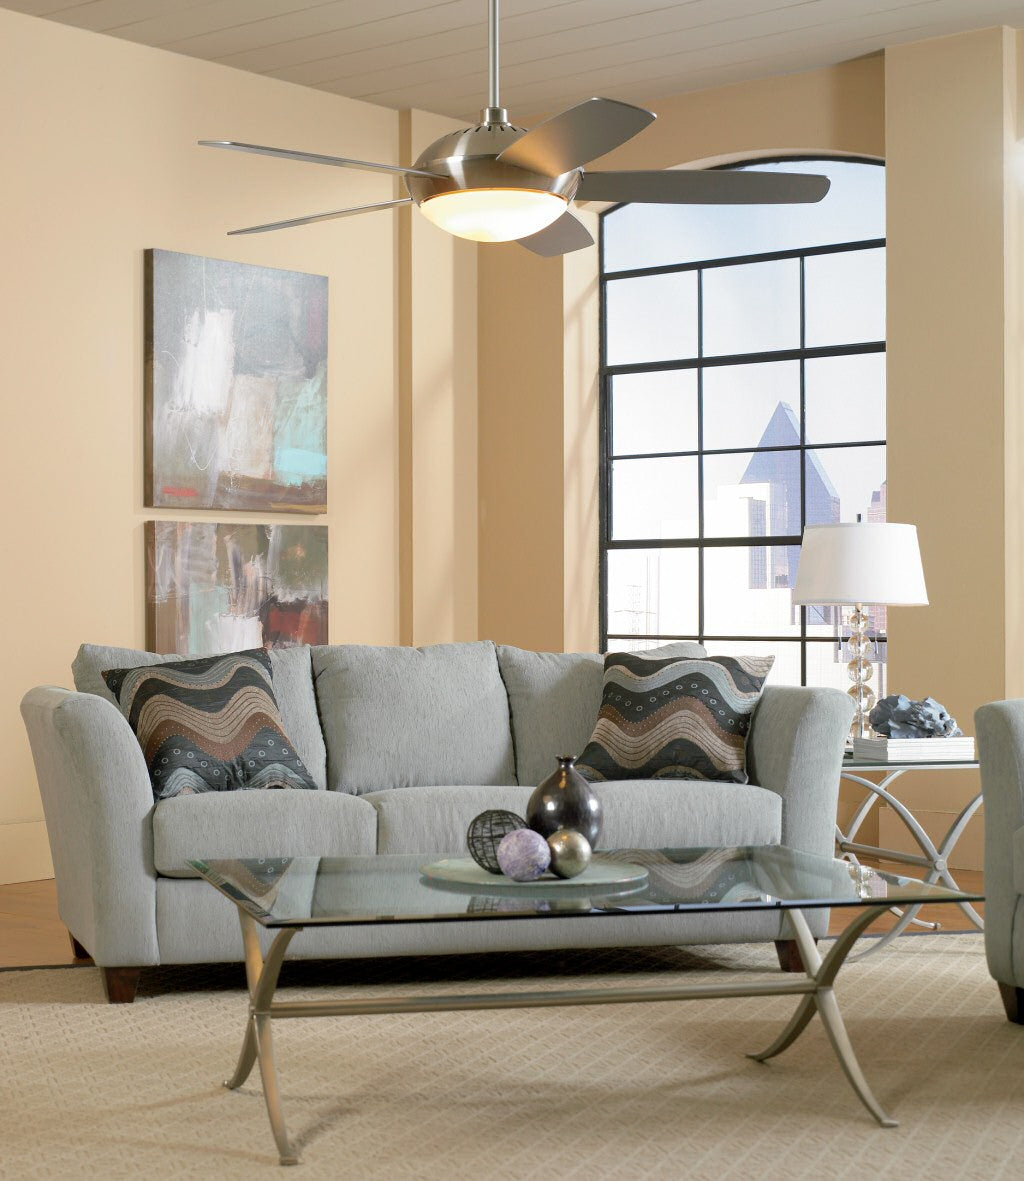 Average Sized Living Room Design Ideas. Living Room Ceiling Fan With Lights